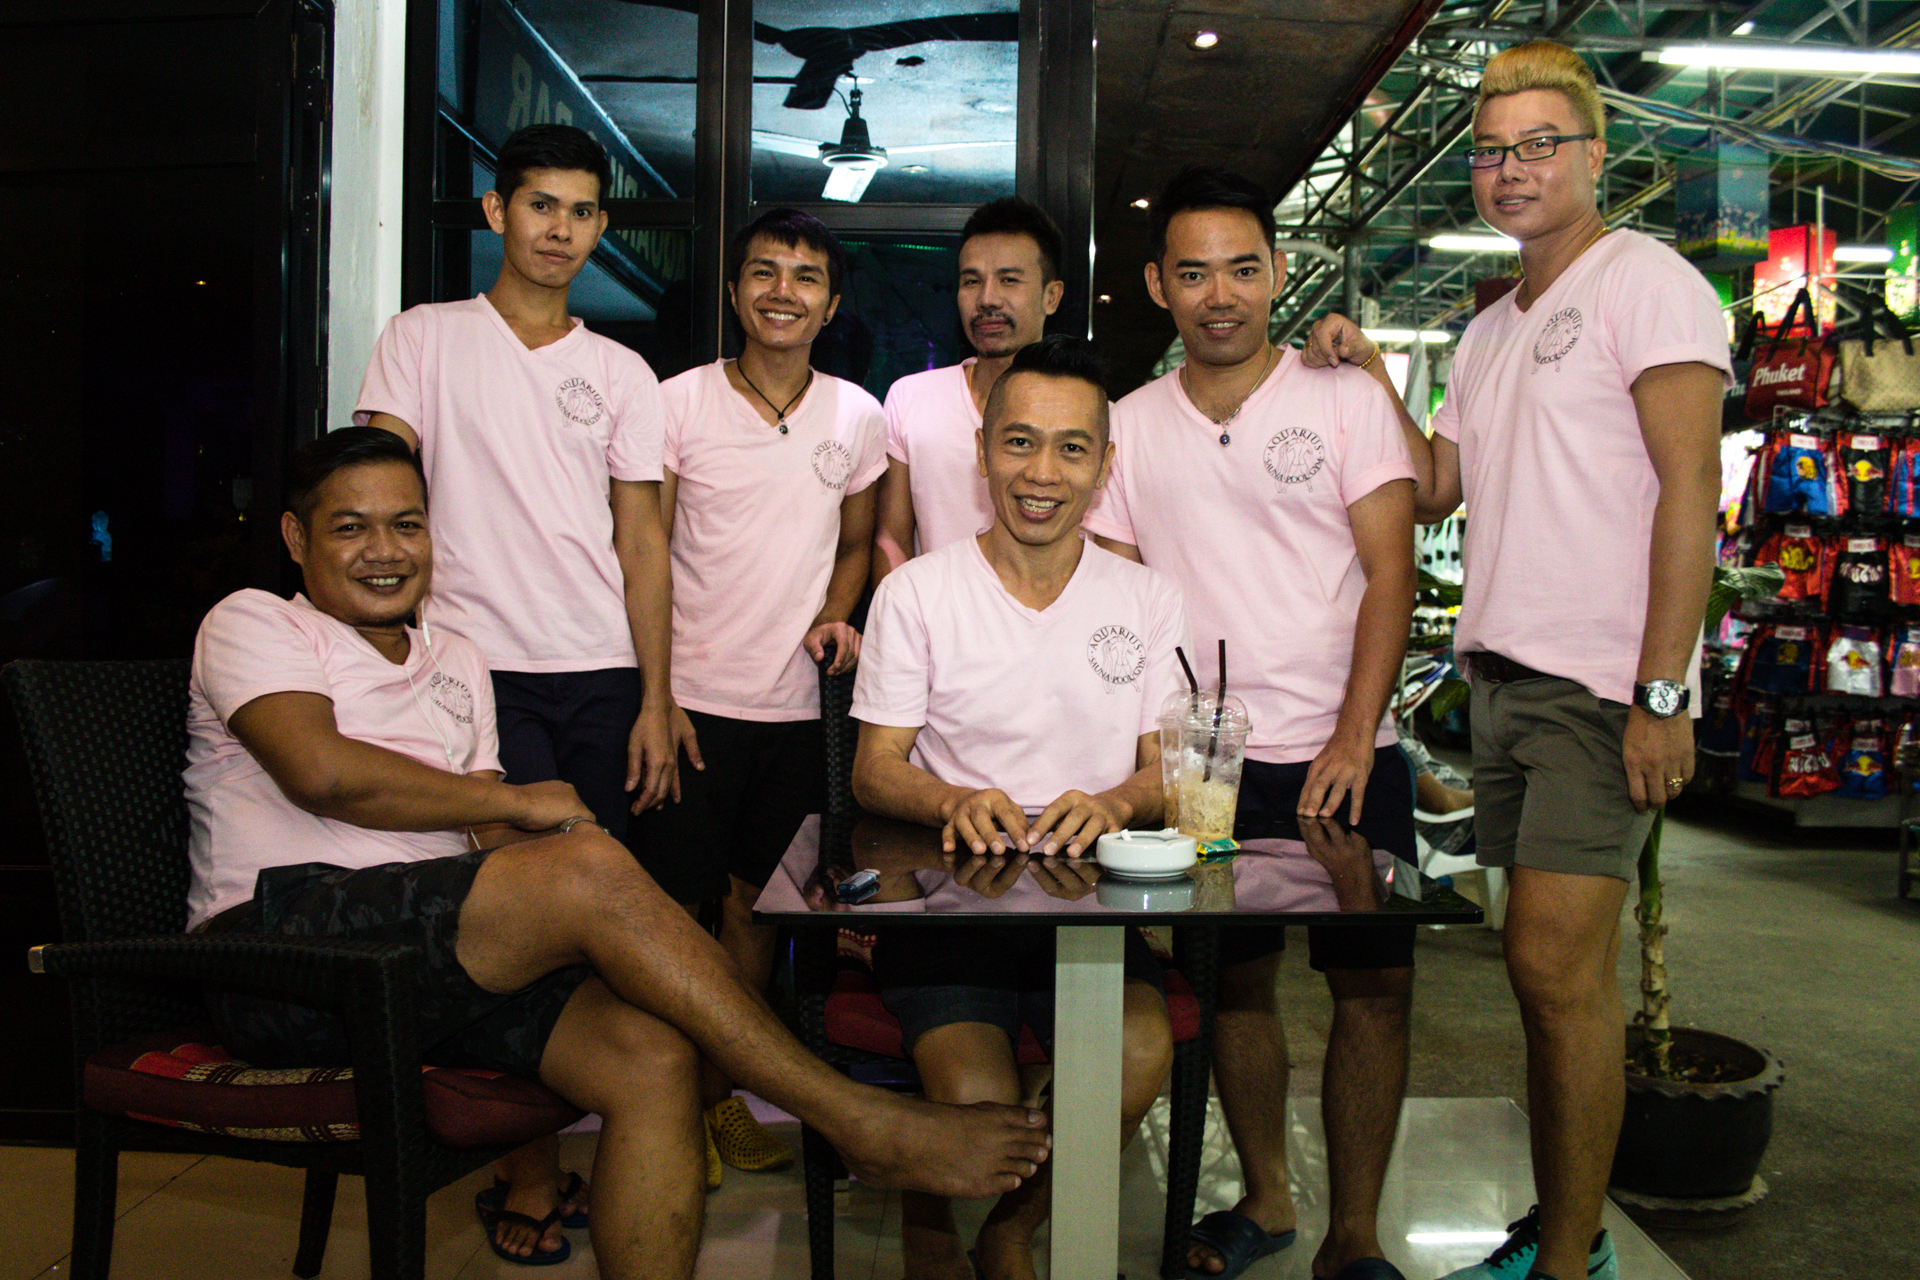 Paradise complex patong and phuket gay festival